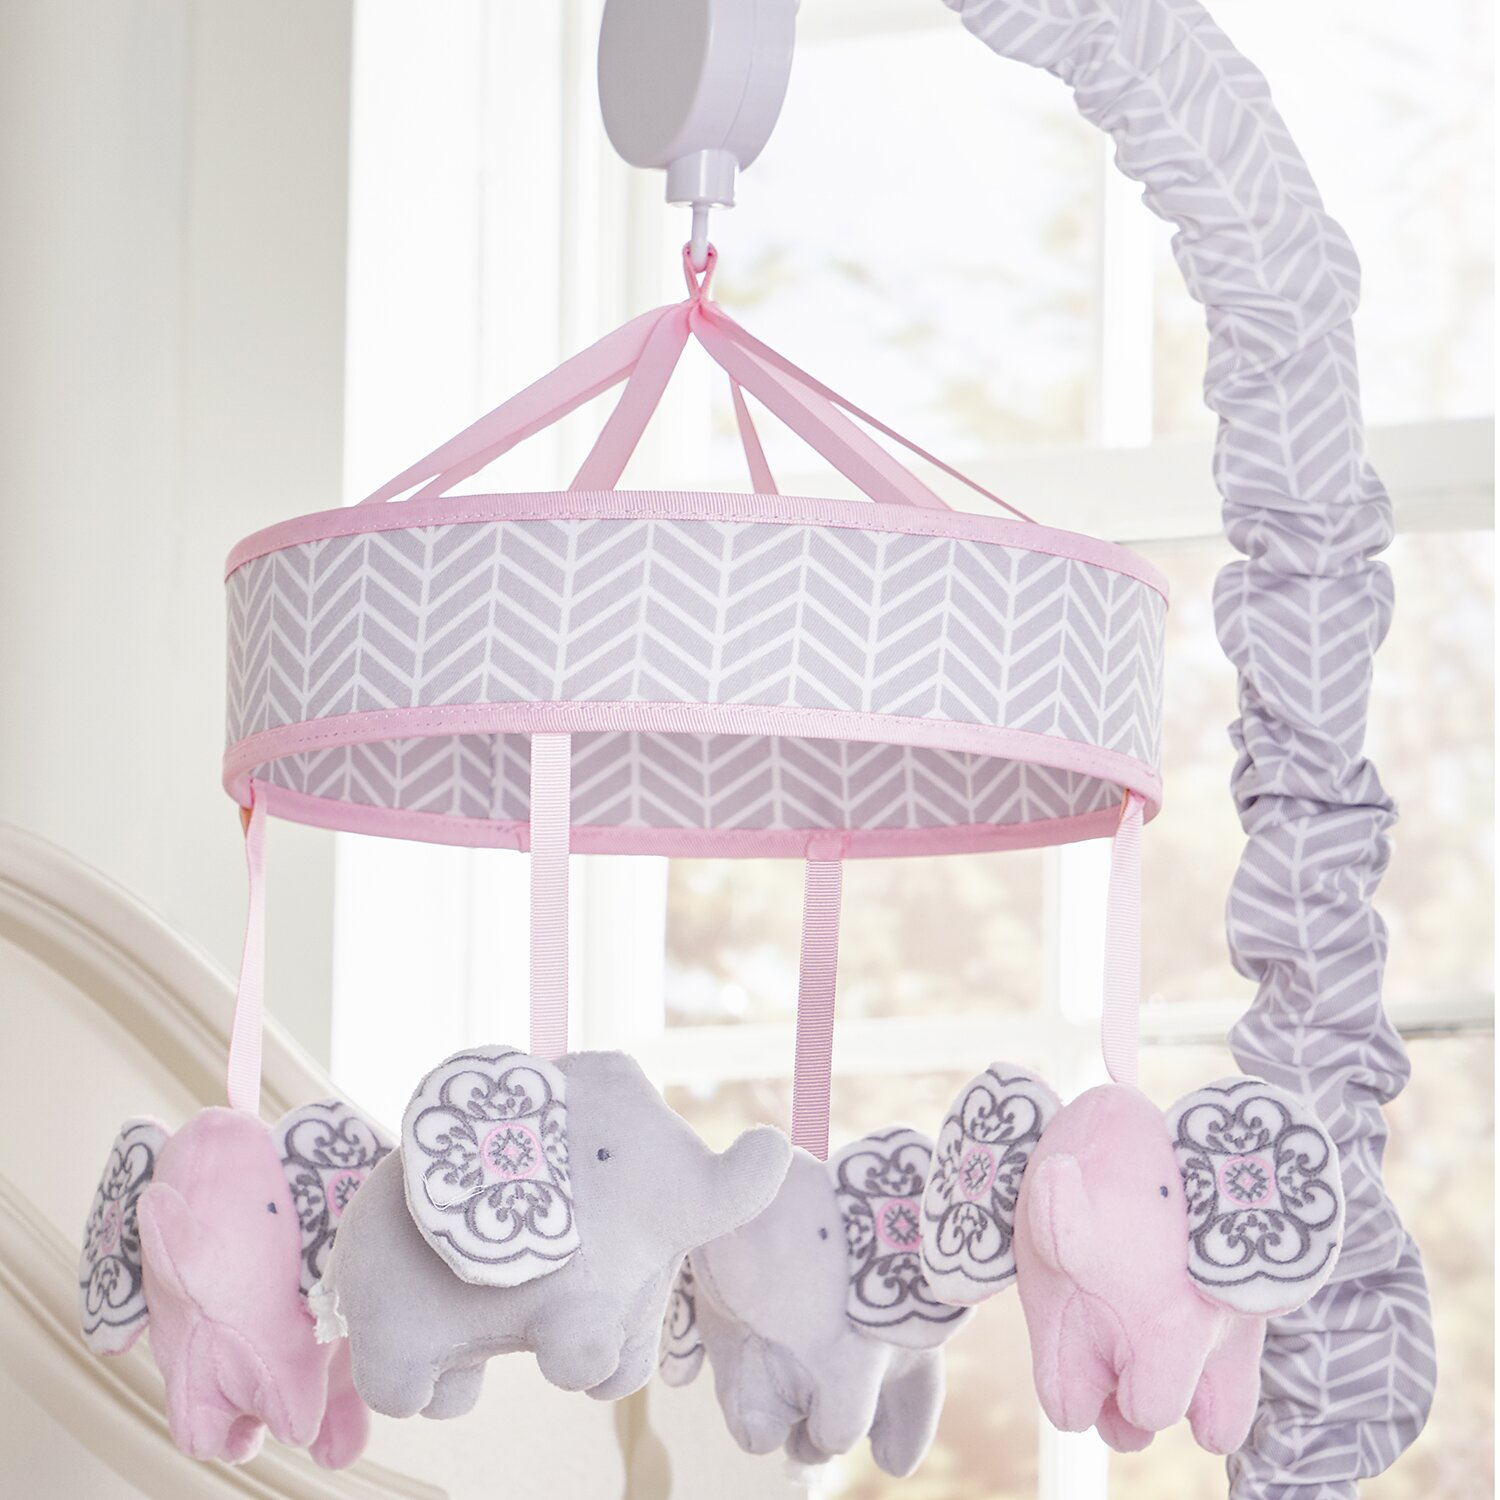 Baby cribs jacksonville fl - Wendy Bellissimo Elodie Motorized Crib Mobile